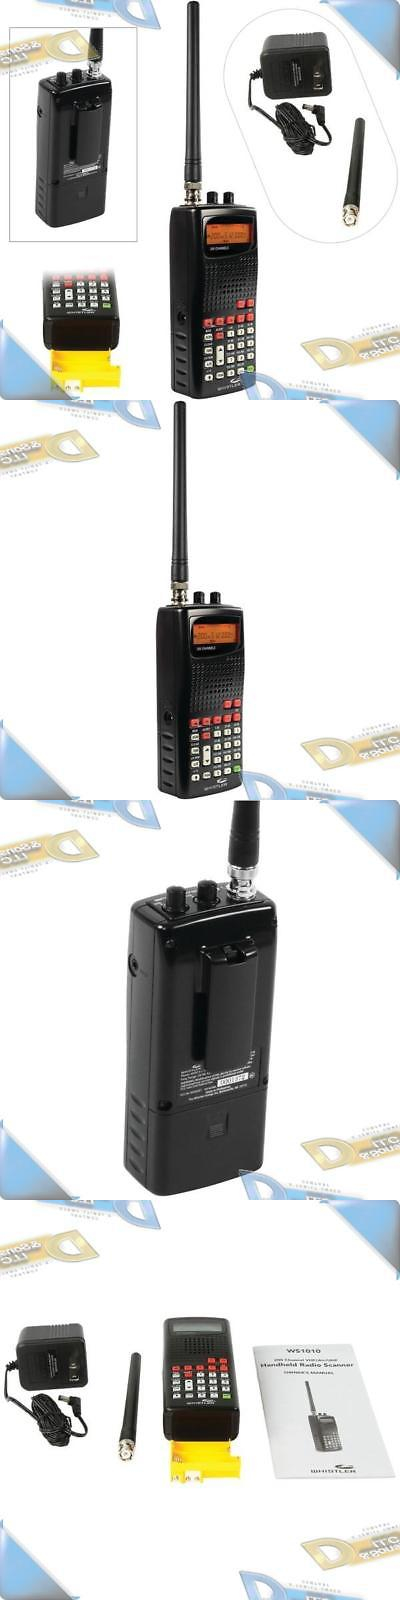 Scanners New Whistler 200 Channel Vhf Lo Hi Band Analog Portable Handheld Radio Scanner